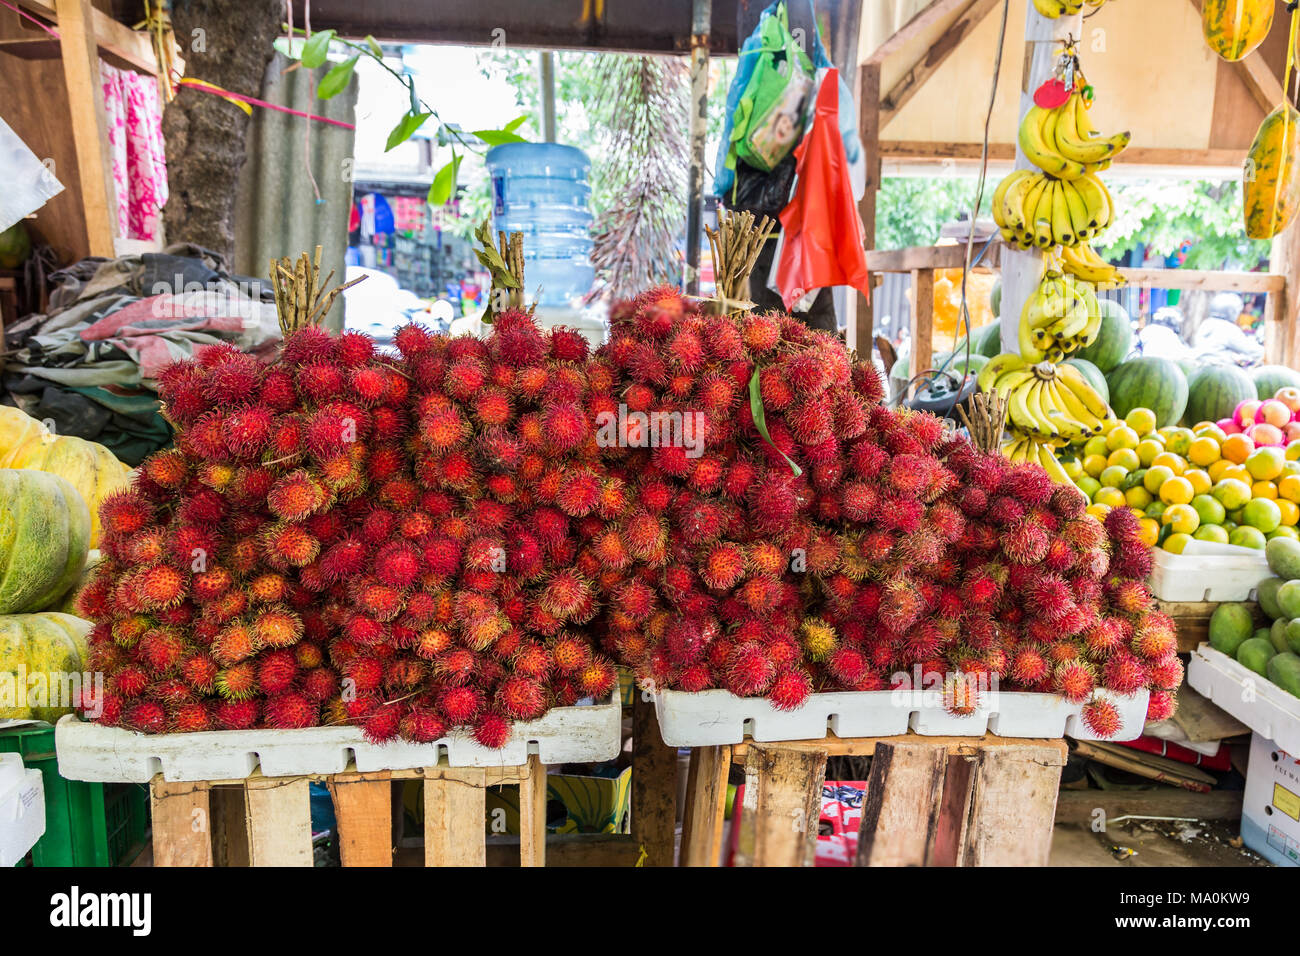 Ramboutan ou rouge fruits litchi poilue Photo Stock